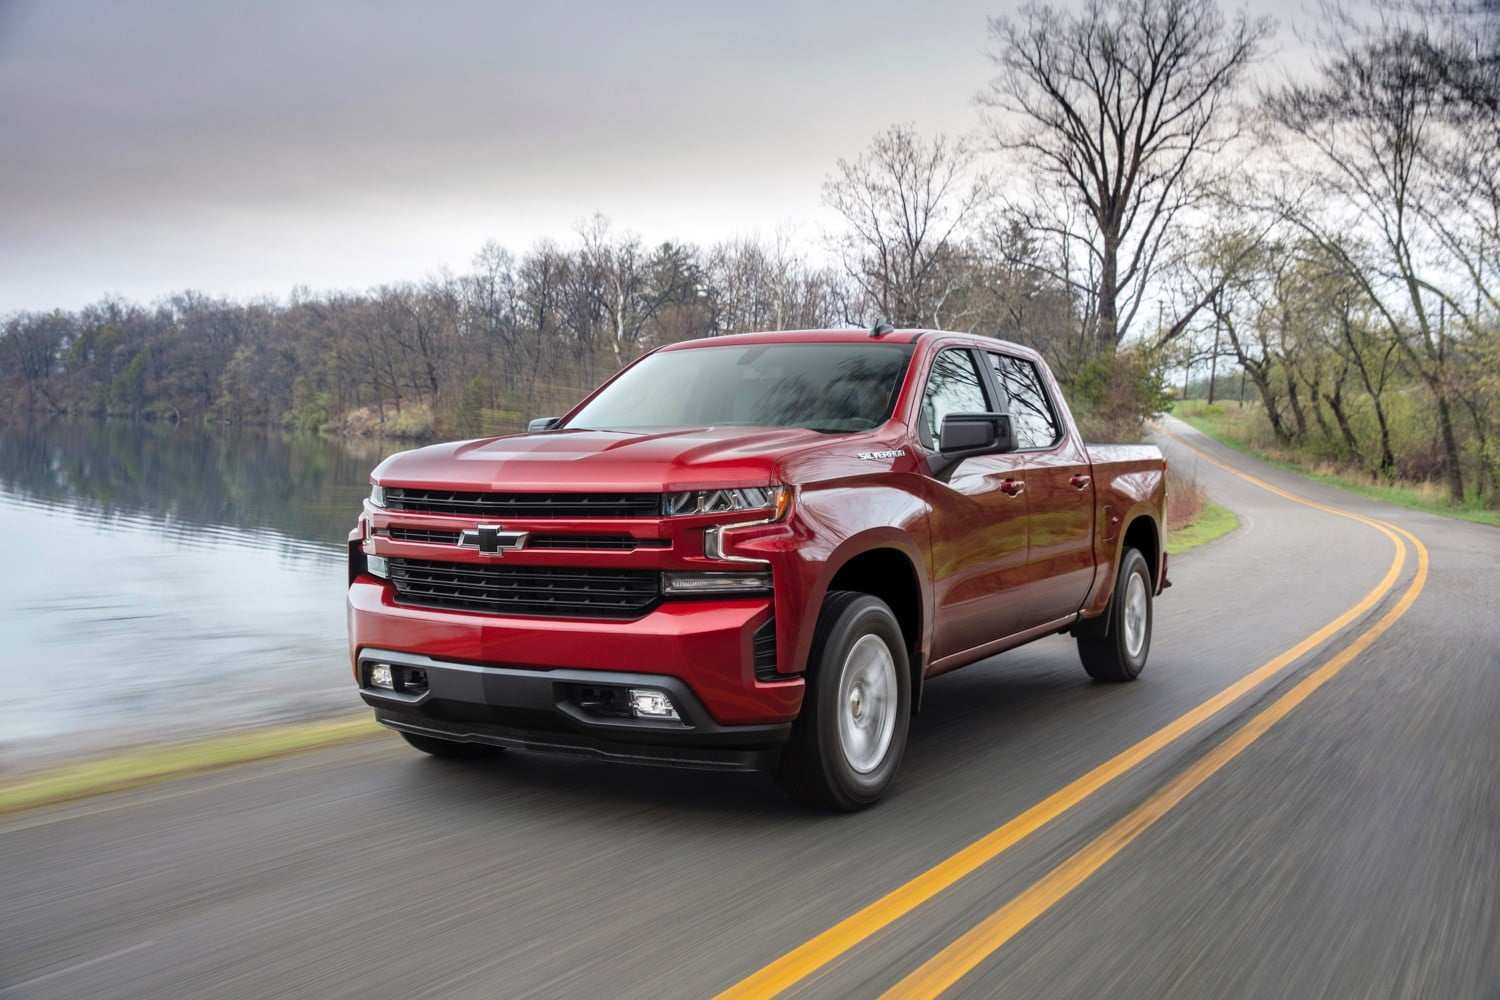 60 All New 2019 Chevrolet Silverado Images